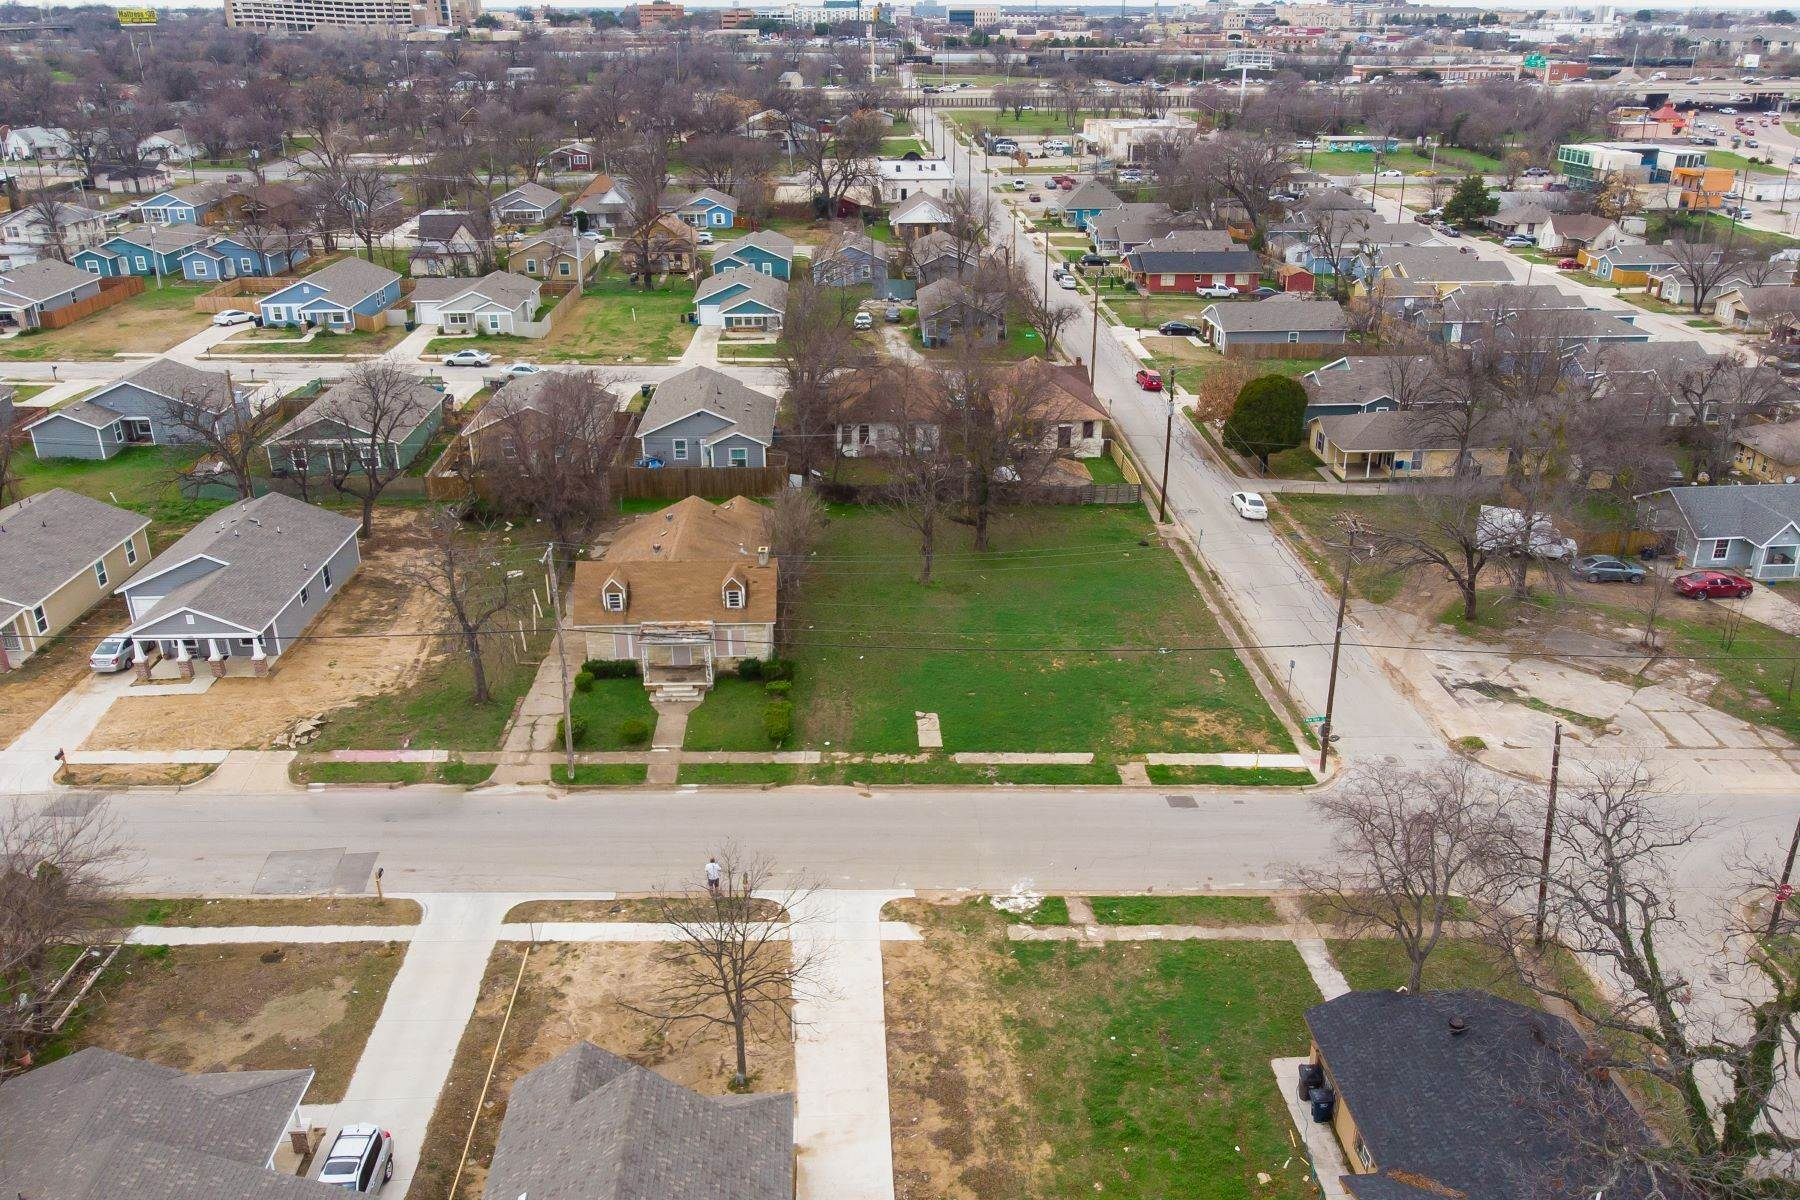 Land for Sale at Build your dream home on this over-sized lot 1300 New York Avenue Fort Worth, Texas 76104 United States